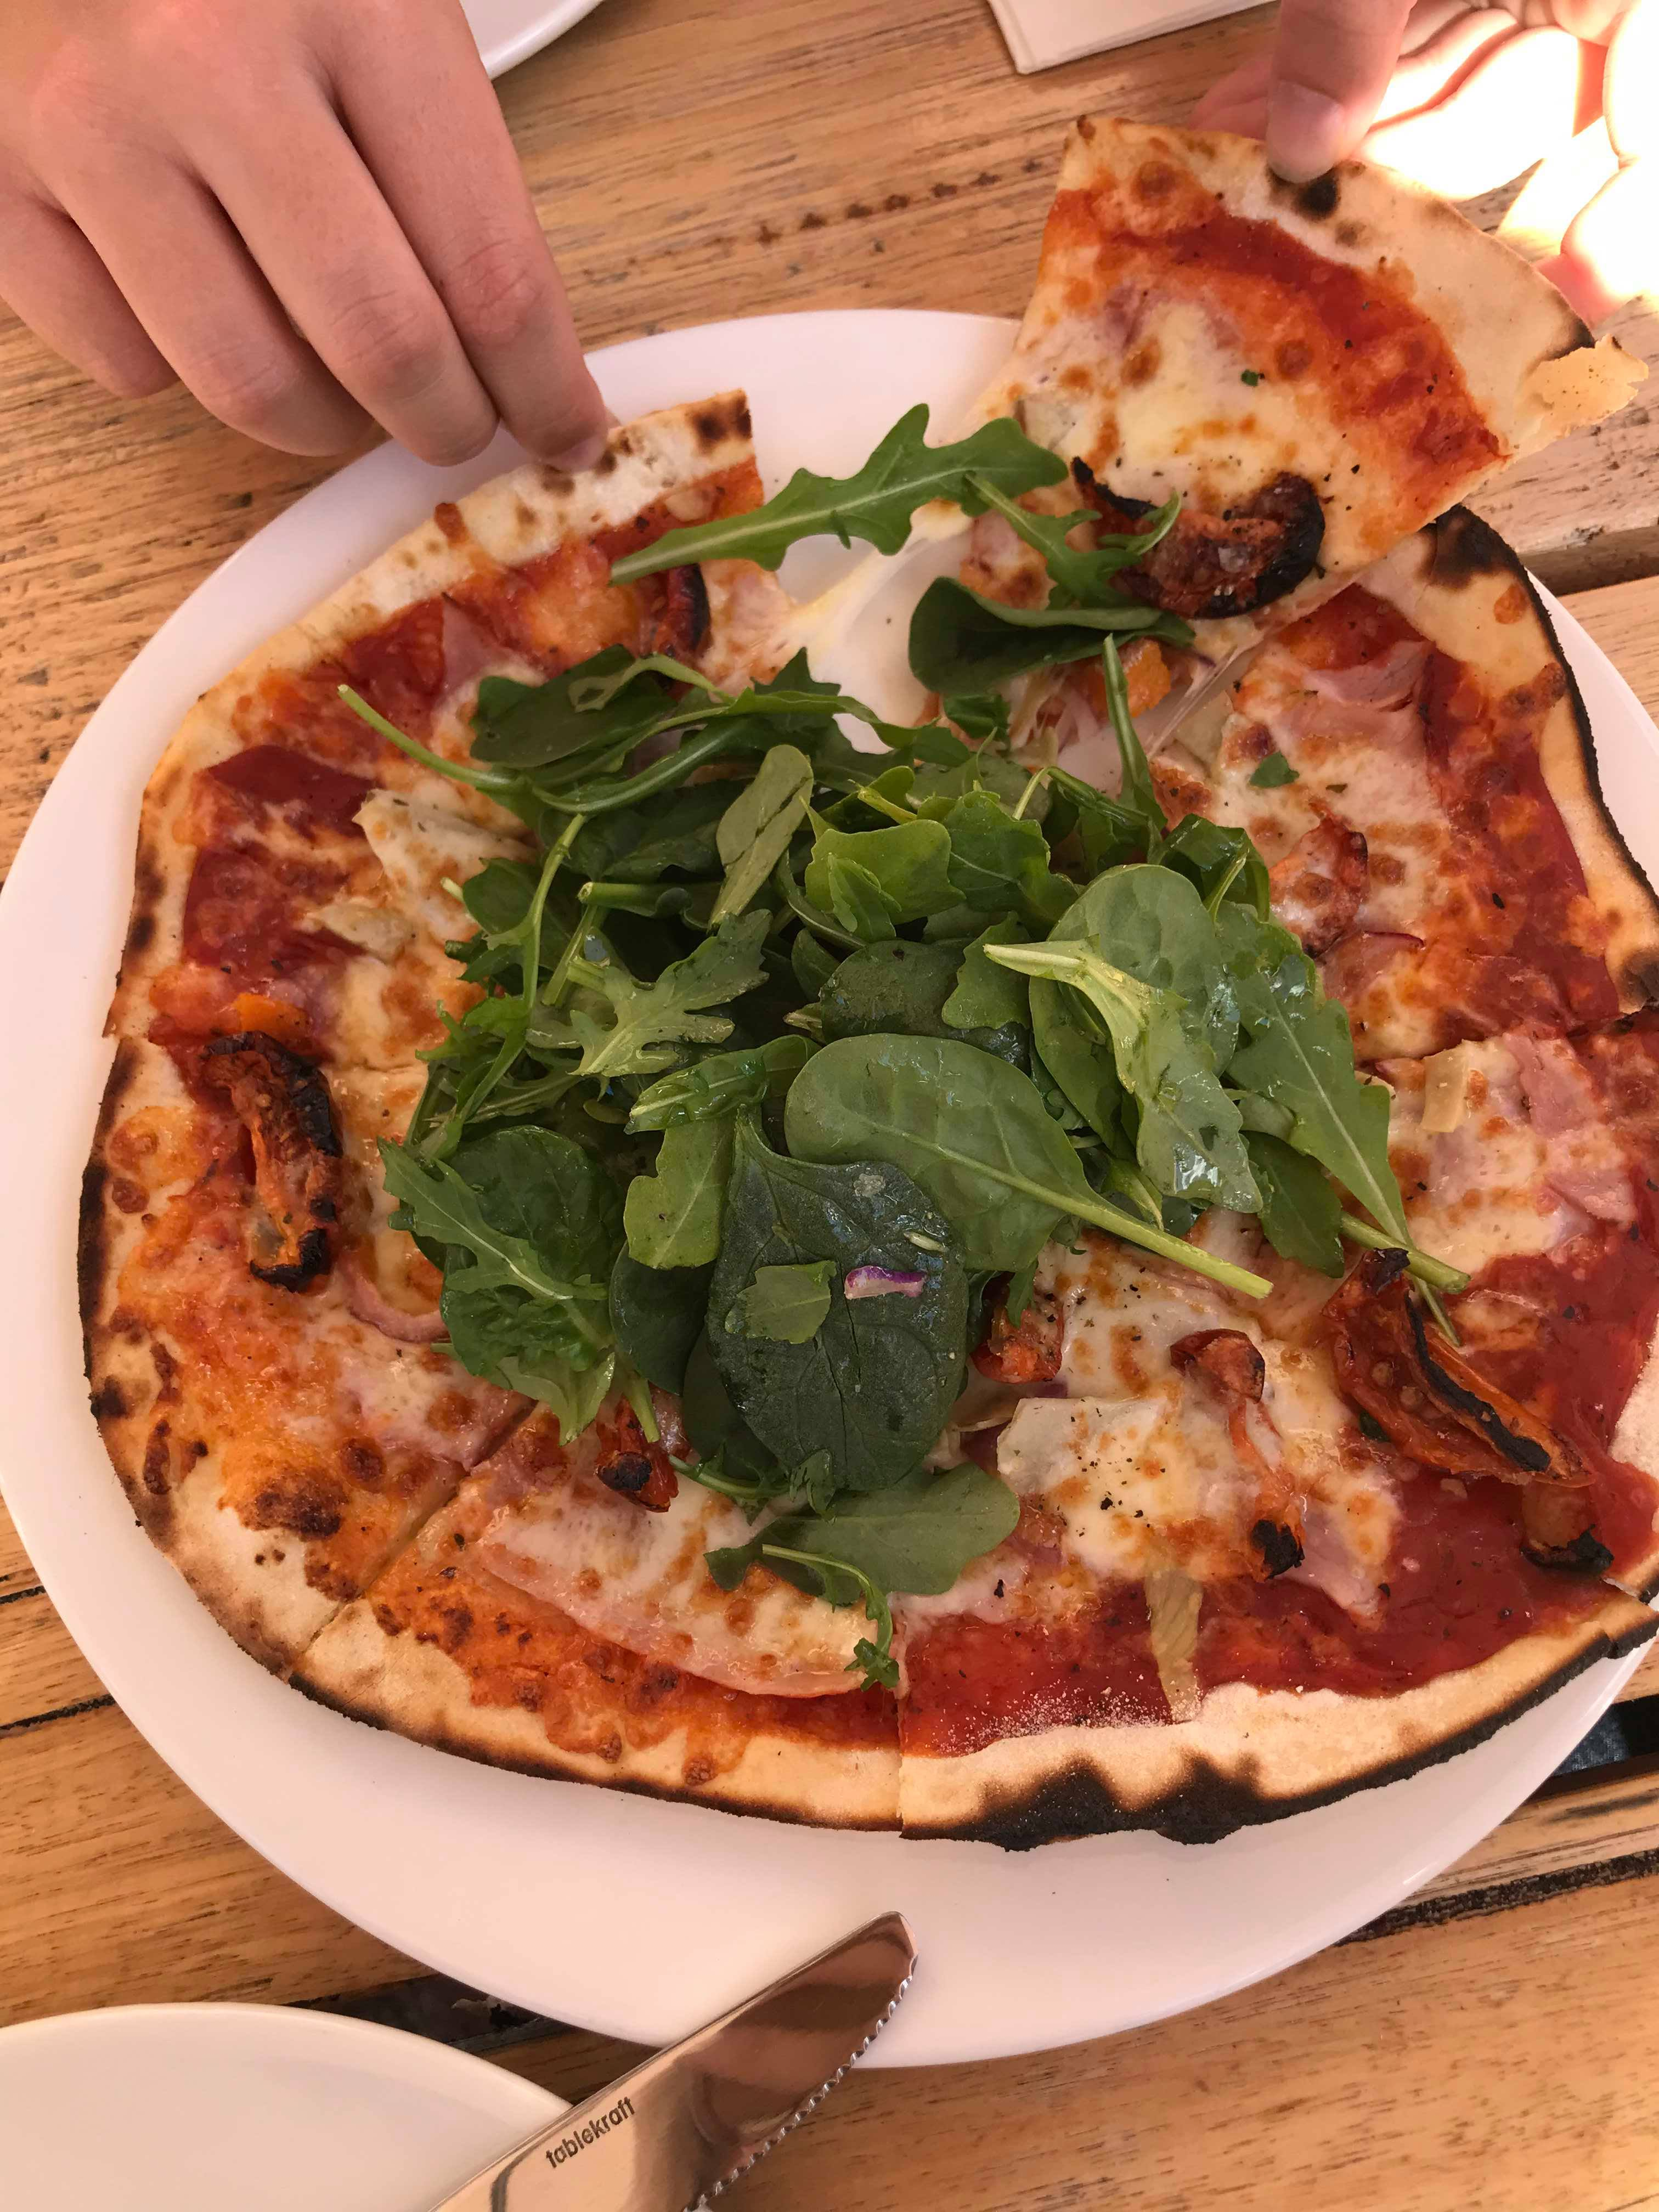 Woodfire pizza fresh from the oven at Daylesford Cider Co